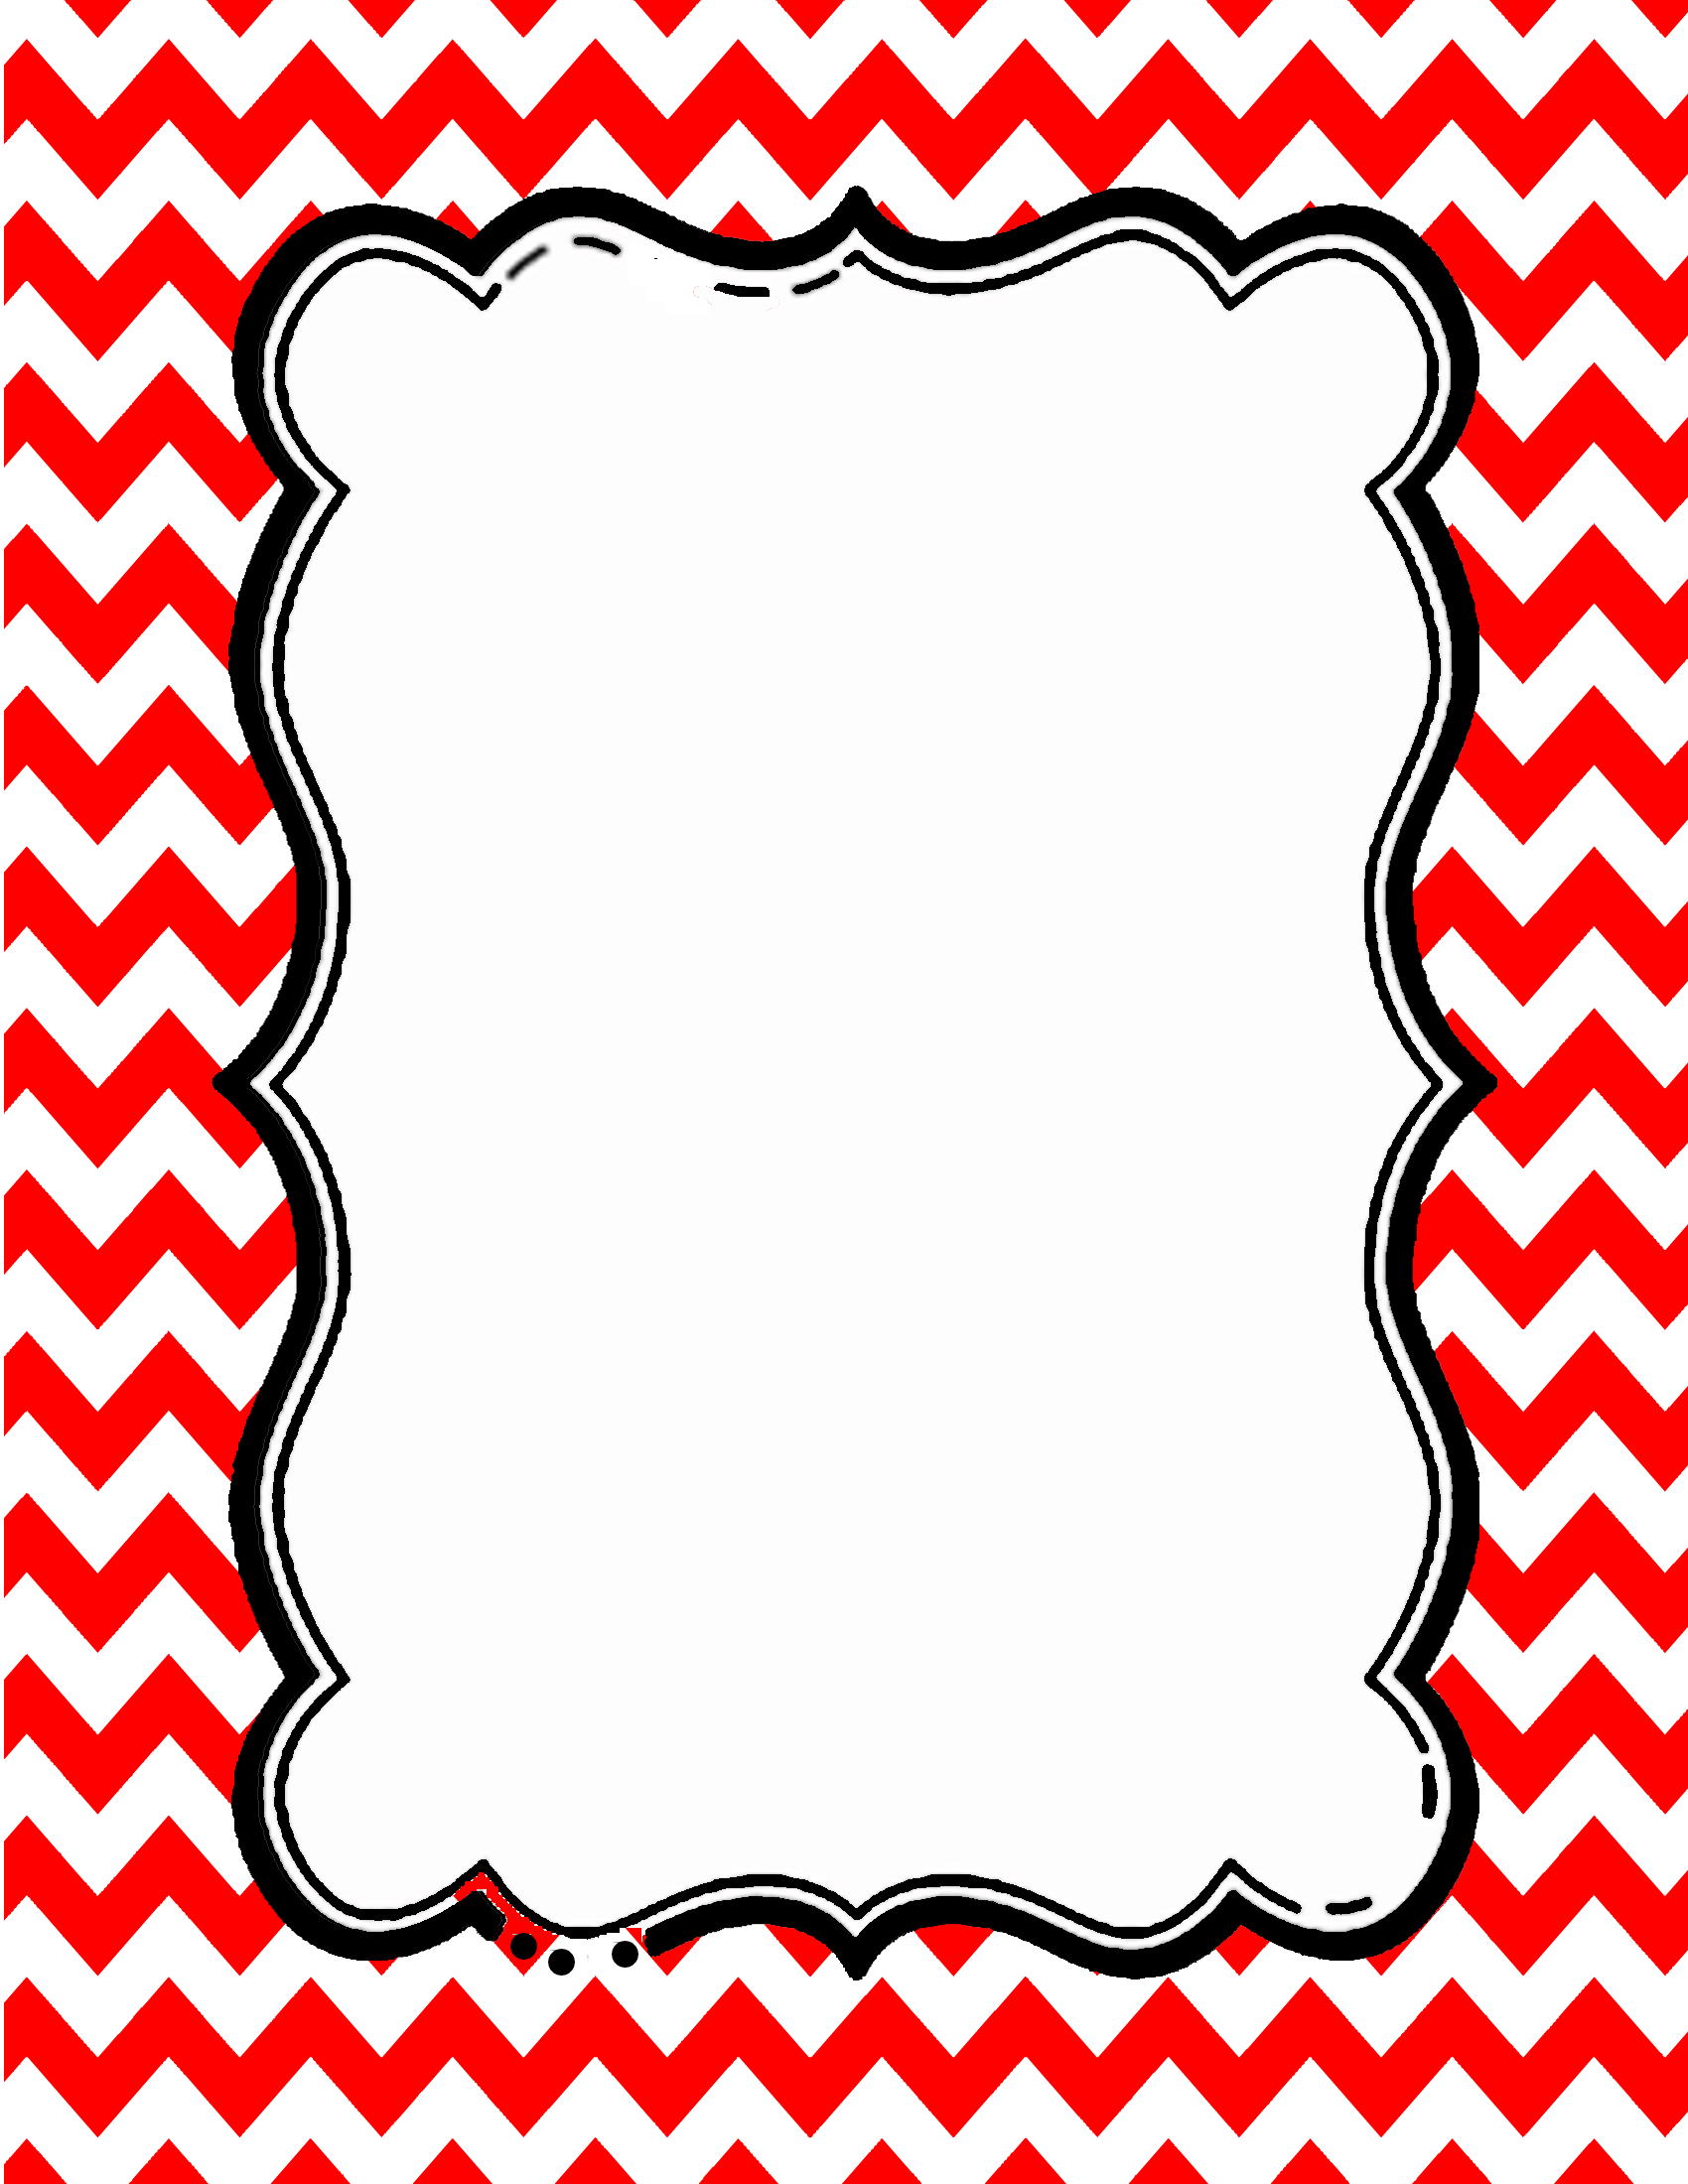 Free download in any. Chevron clipart border